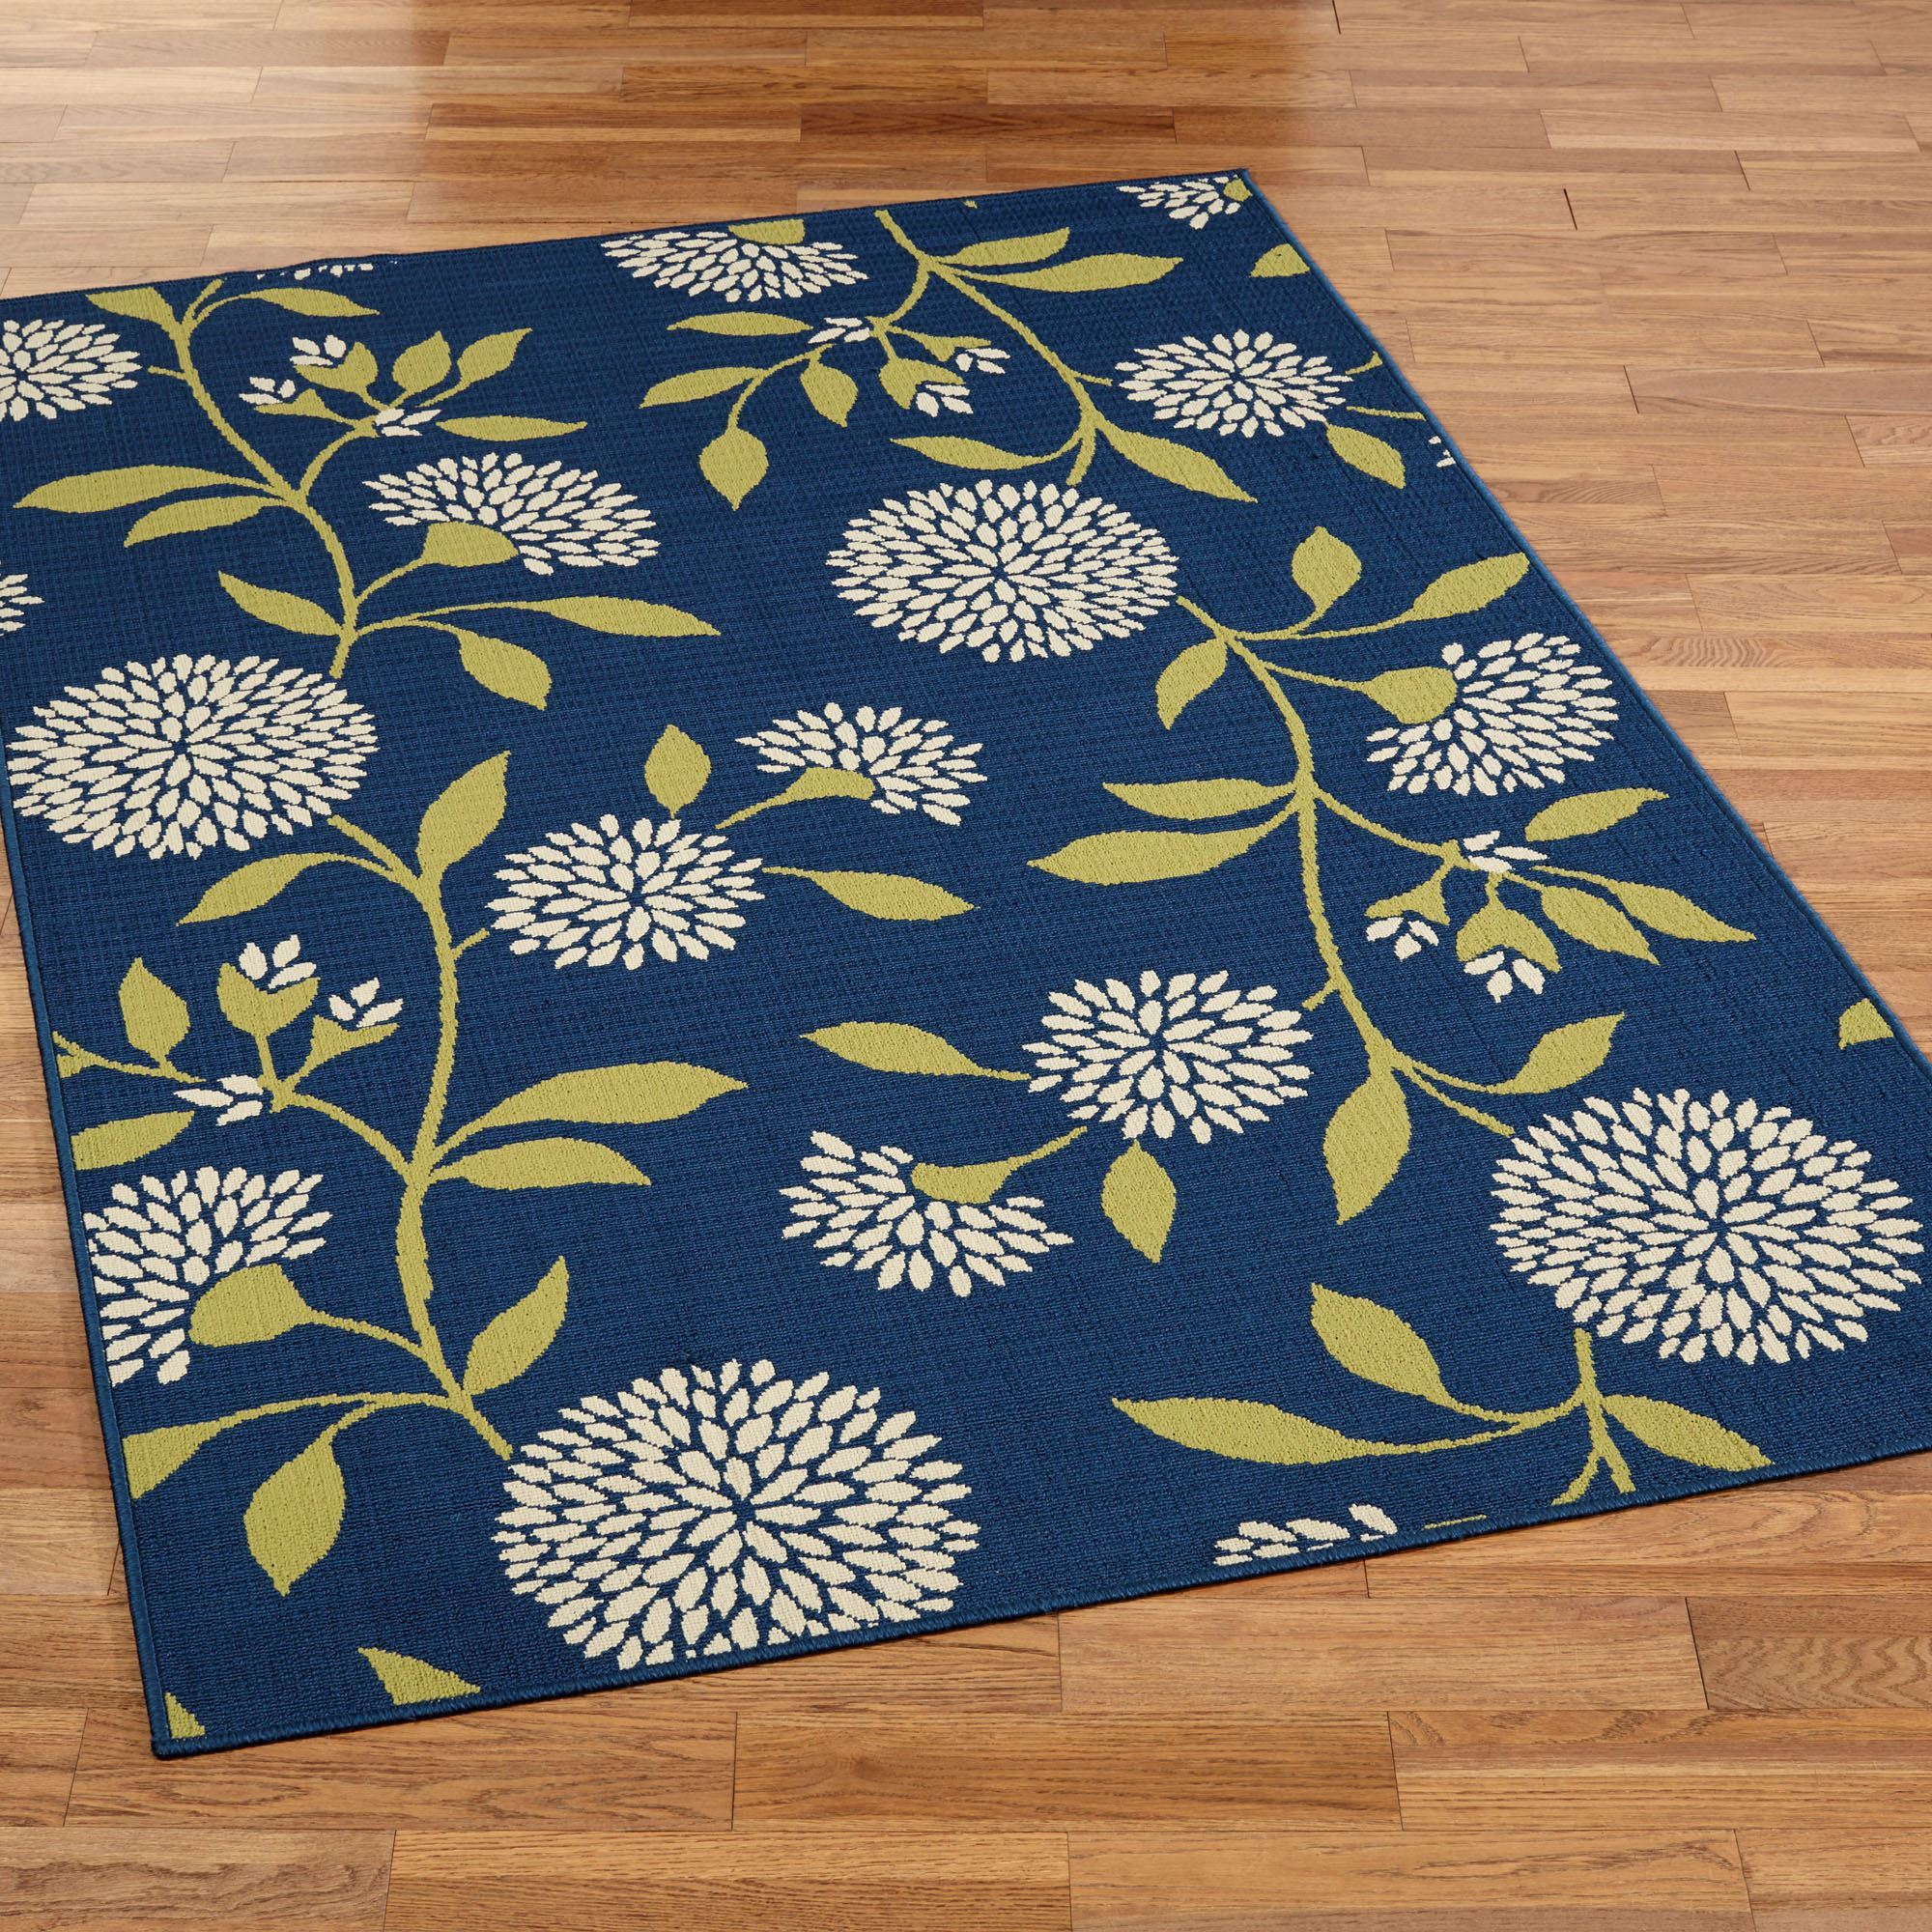 Finest Dandelion Floral Indoor Outdoor Area Rugs XV27